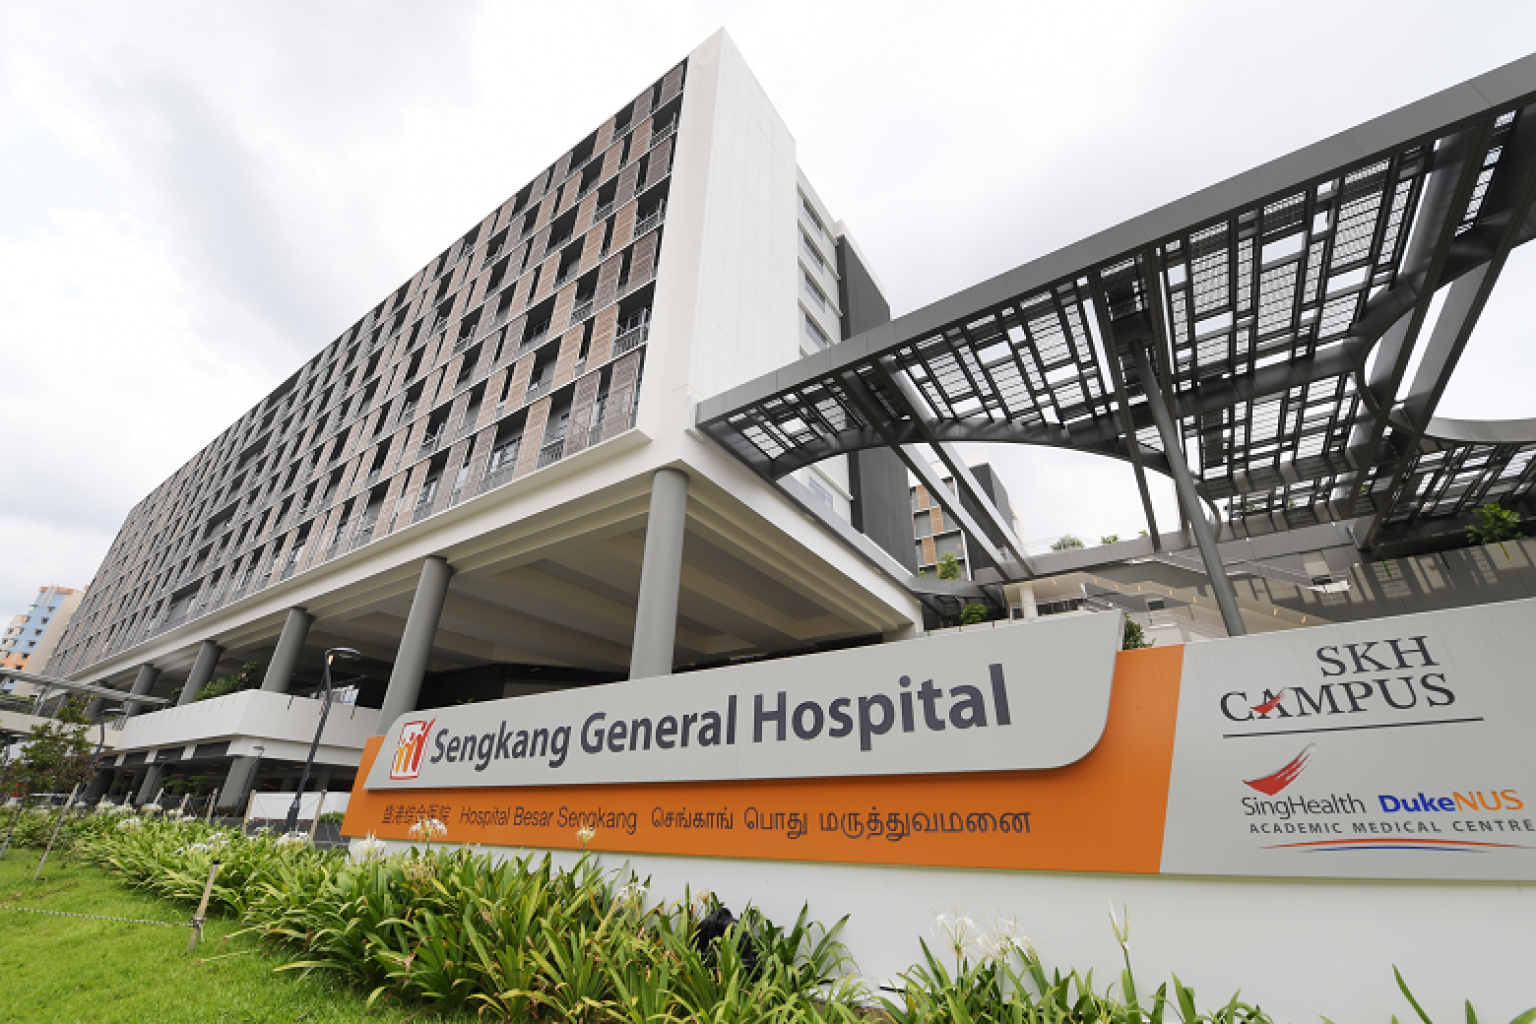 Hospital in Singapore